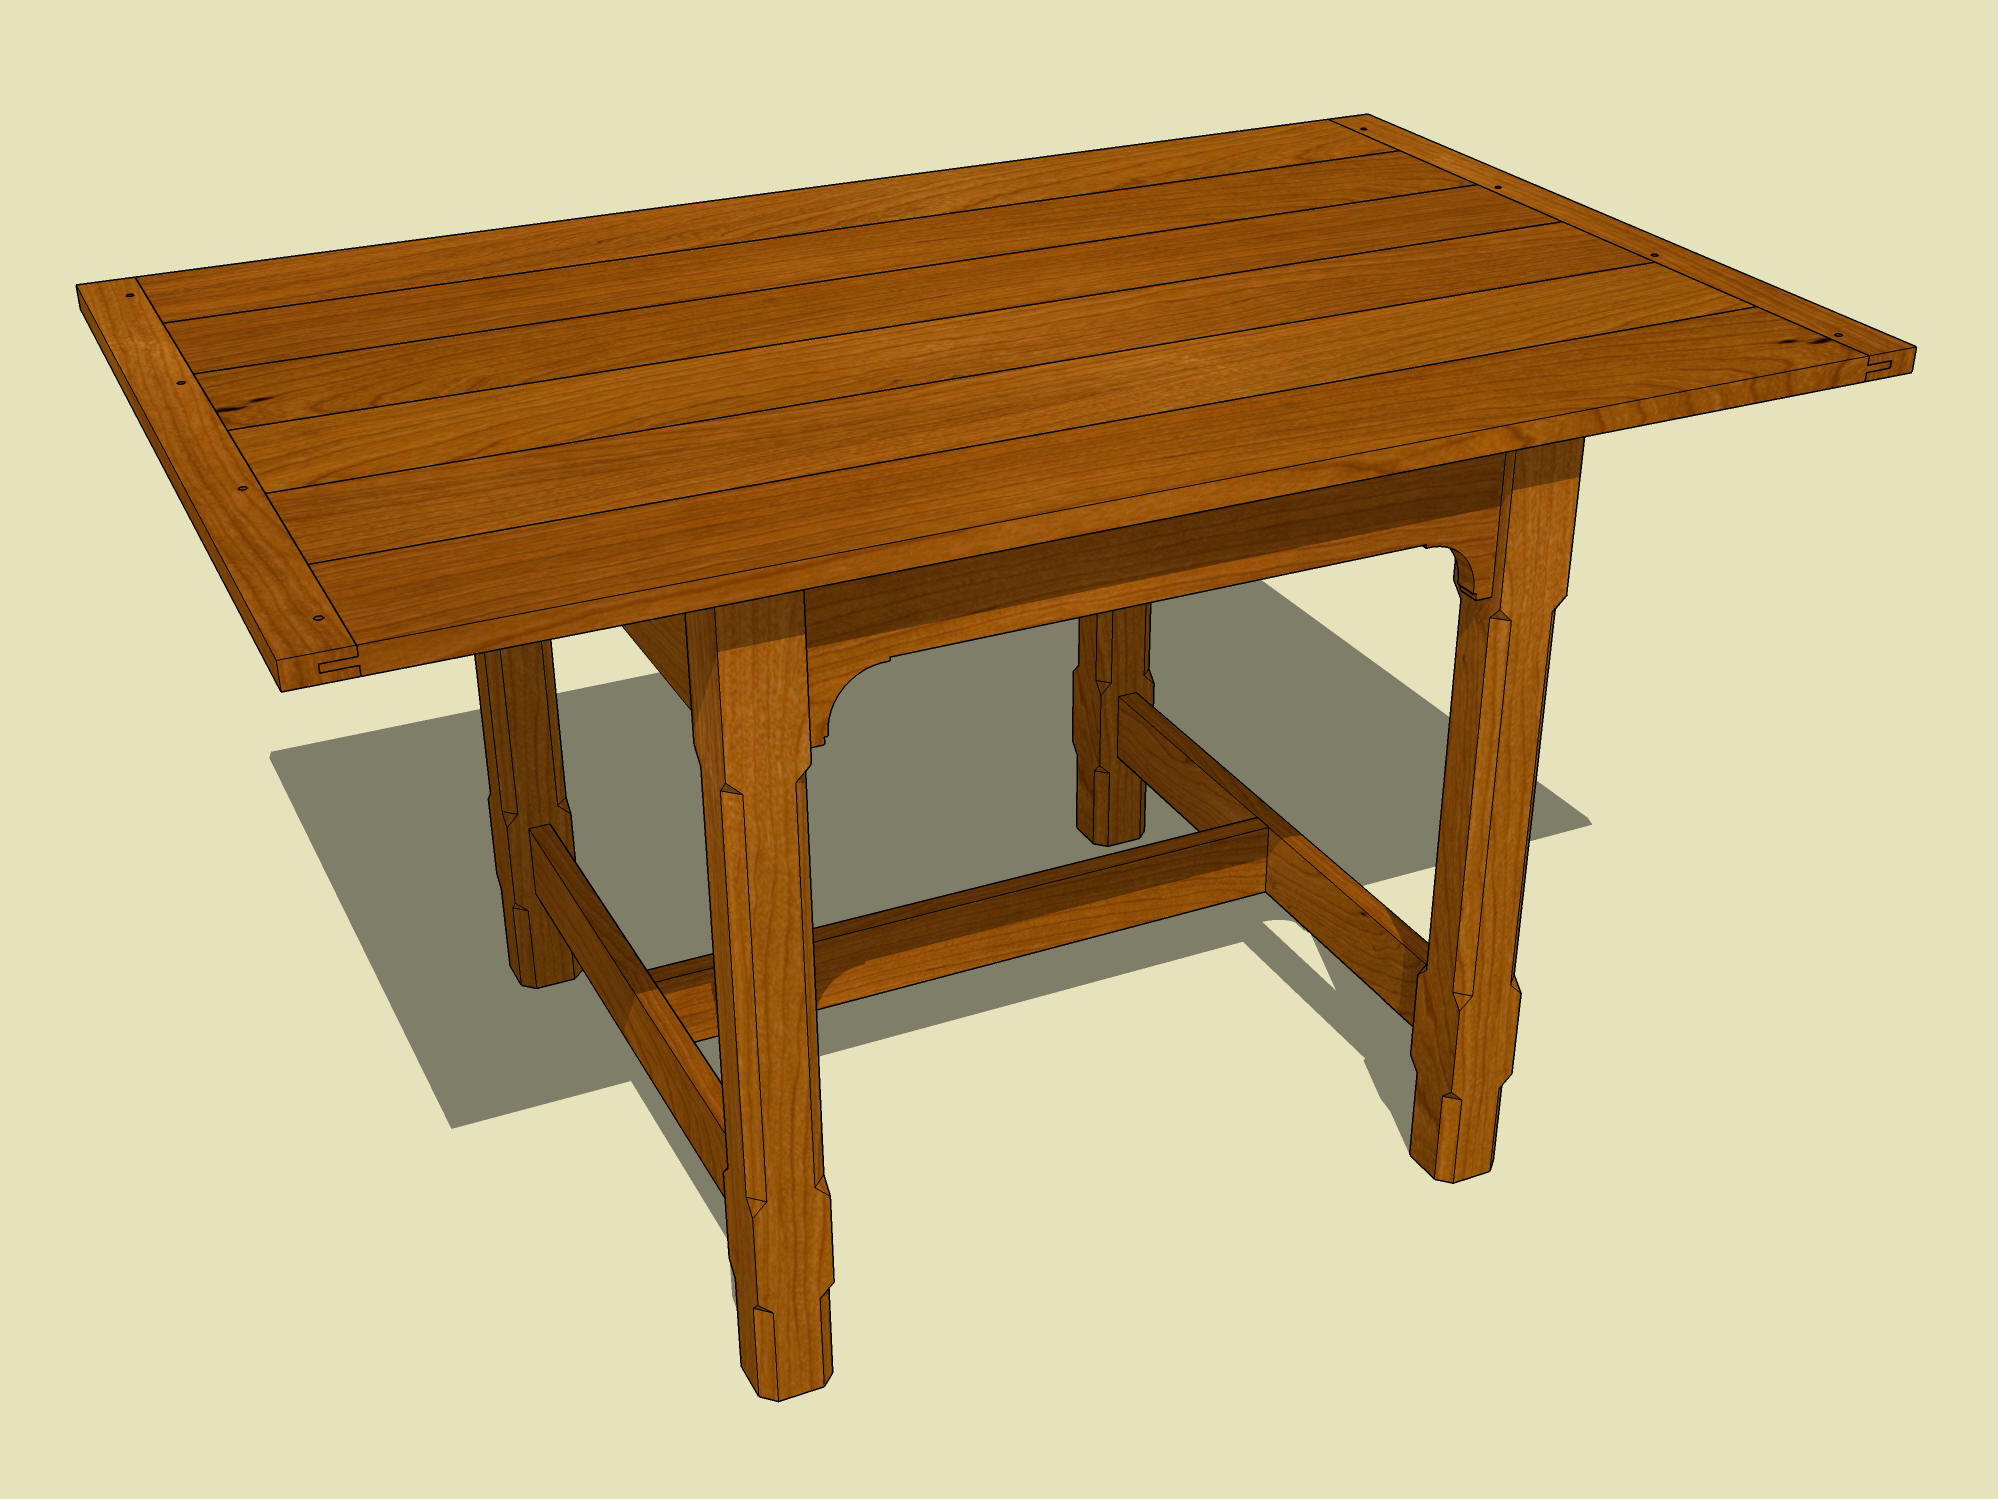 diy free dining table plans woodworking plans free